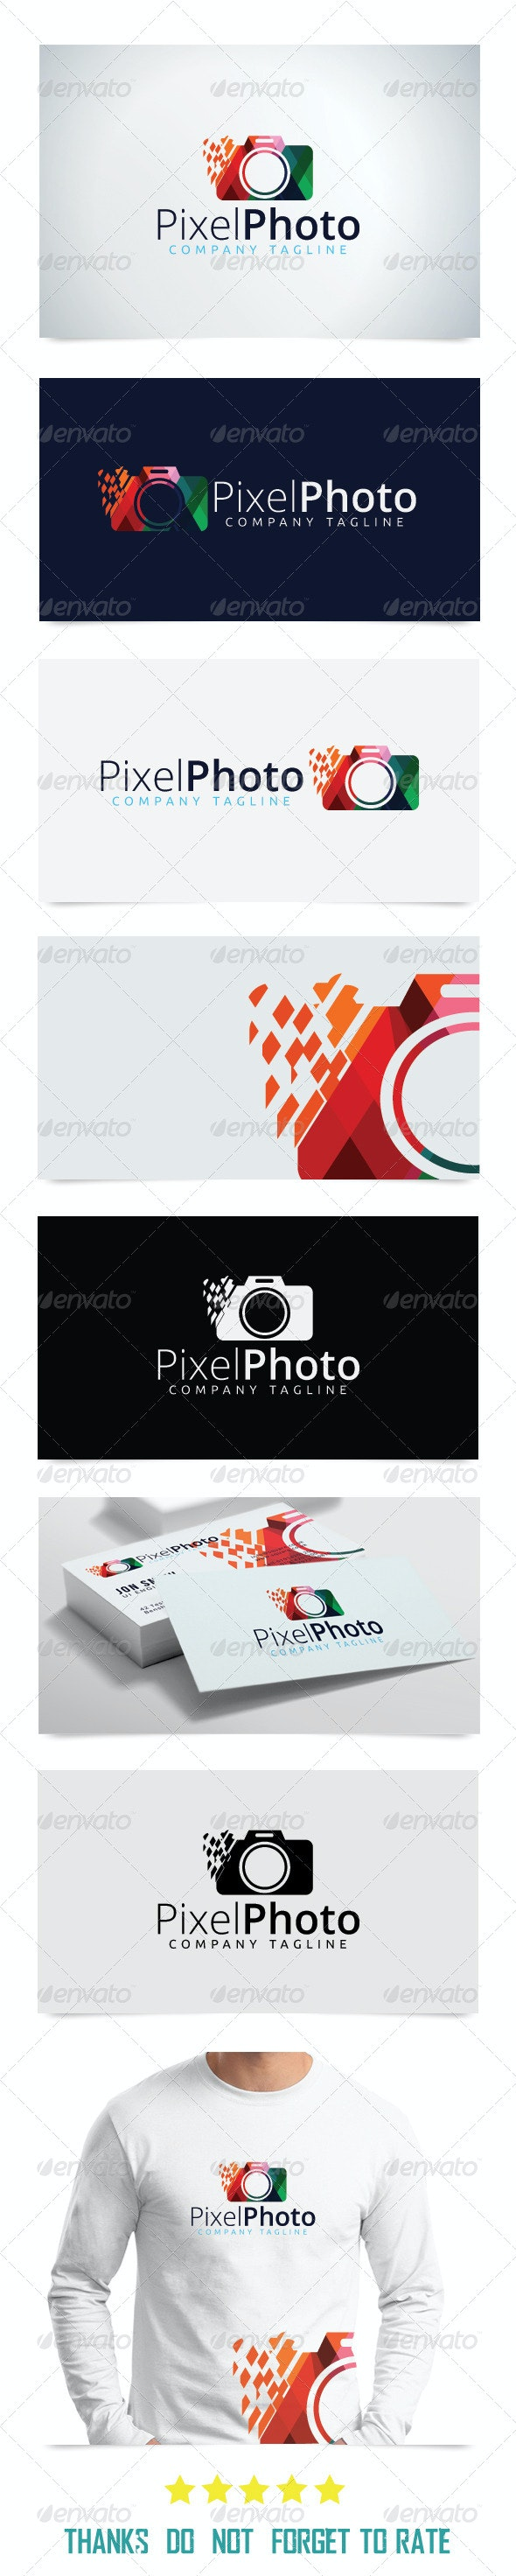 Pixel Media Logo Template - Abstract Logo Templates